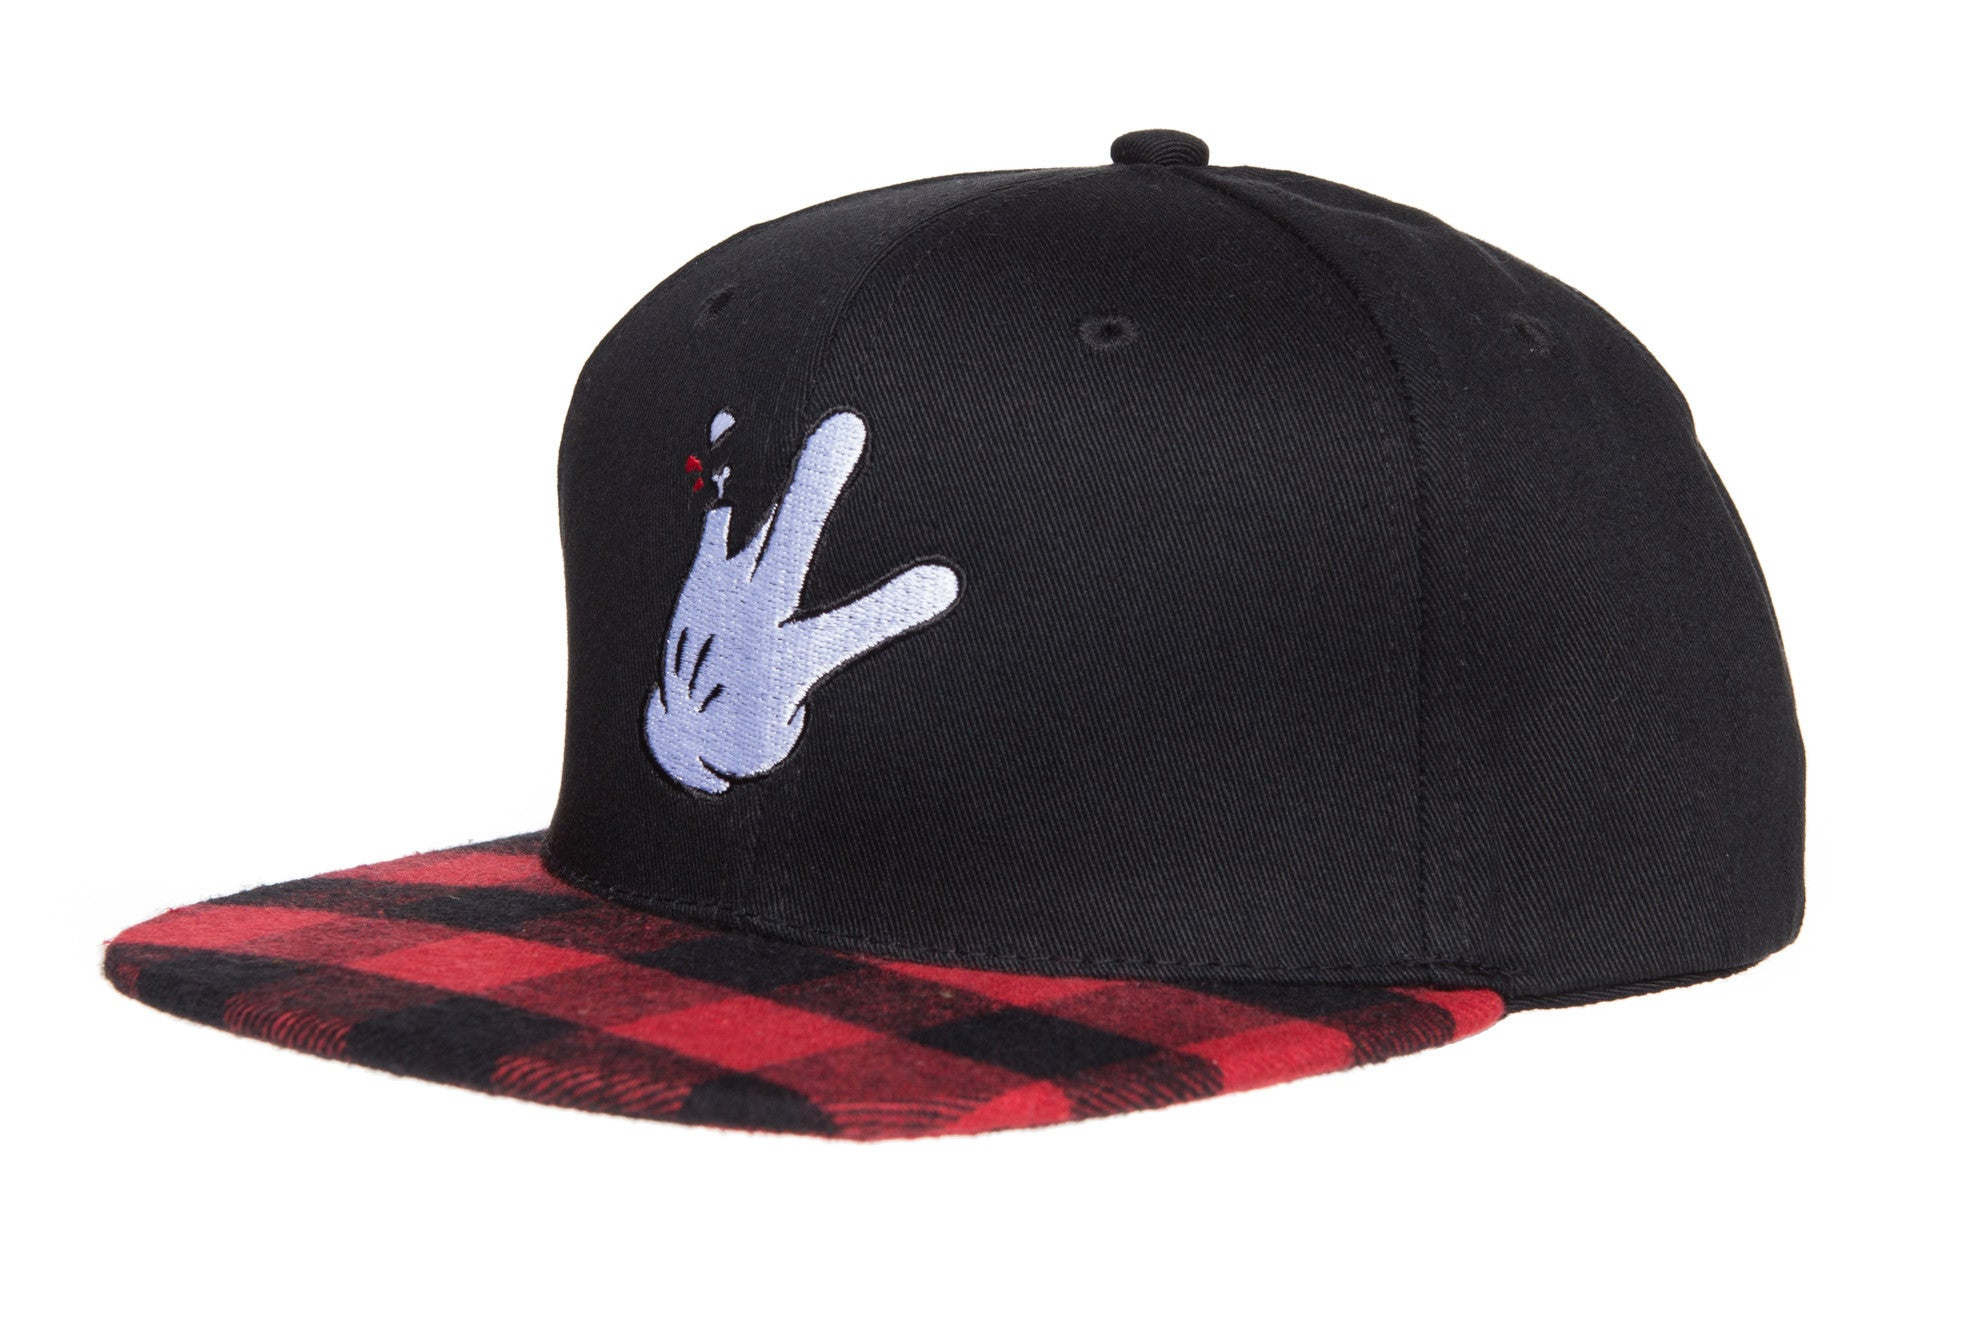 RaceKraft Plaid Cartoon Glove Snapback (Red/Black)